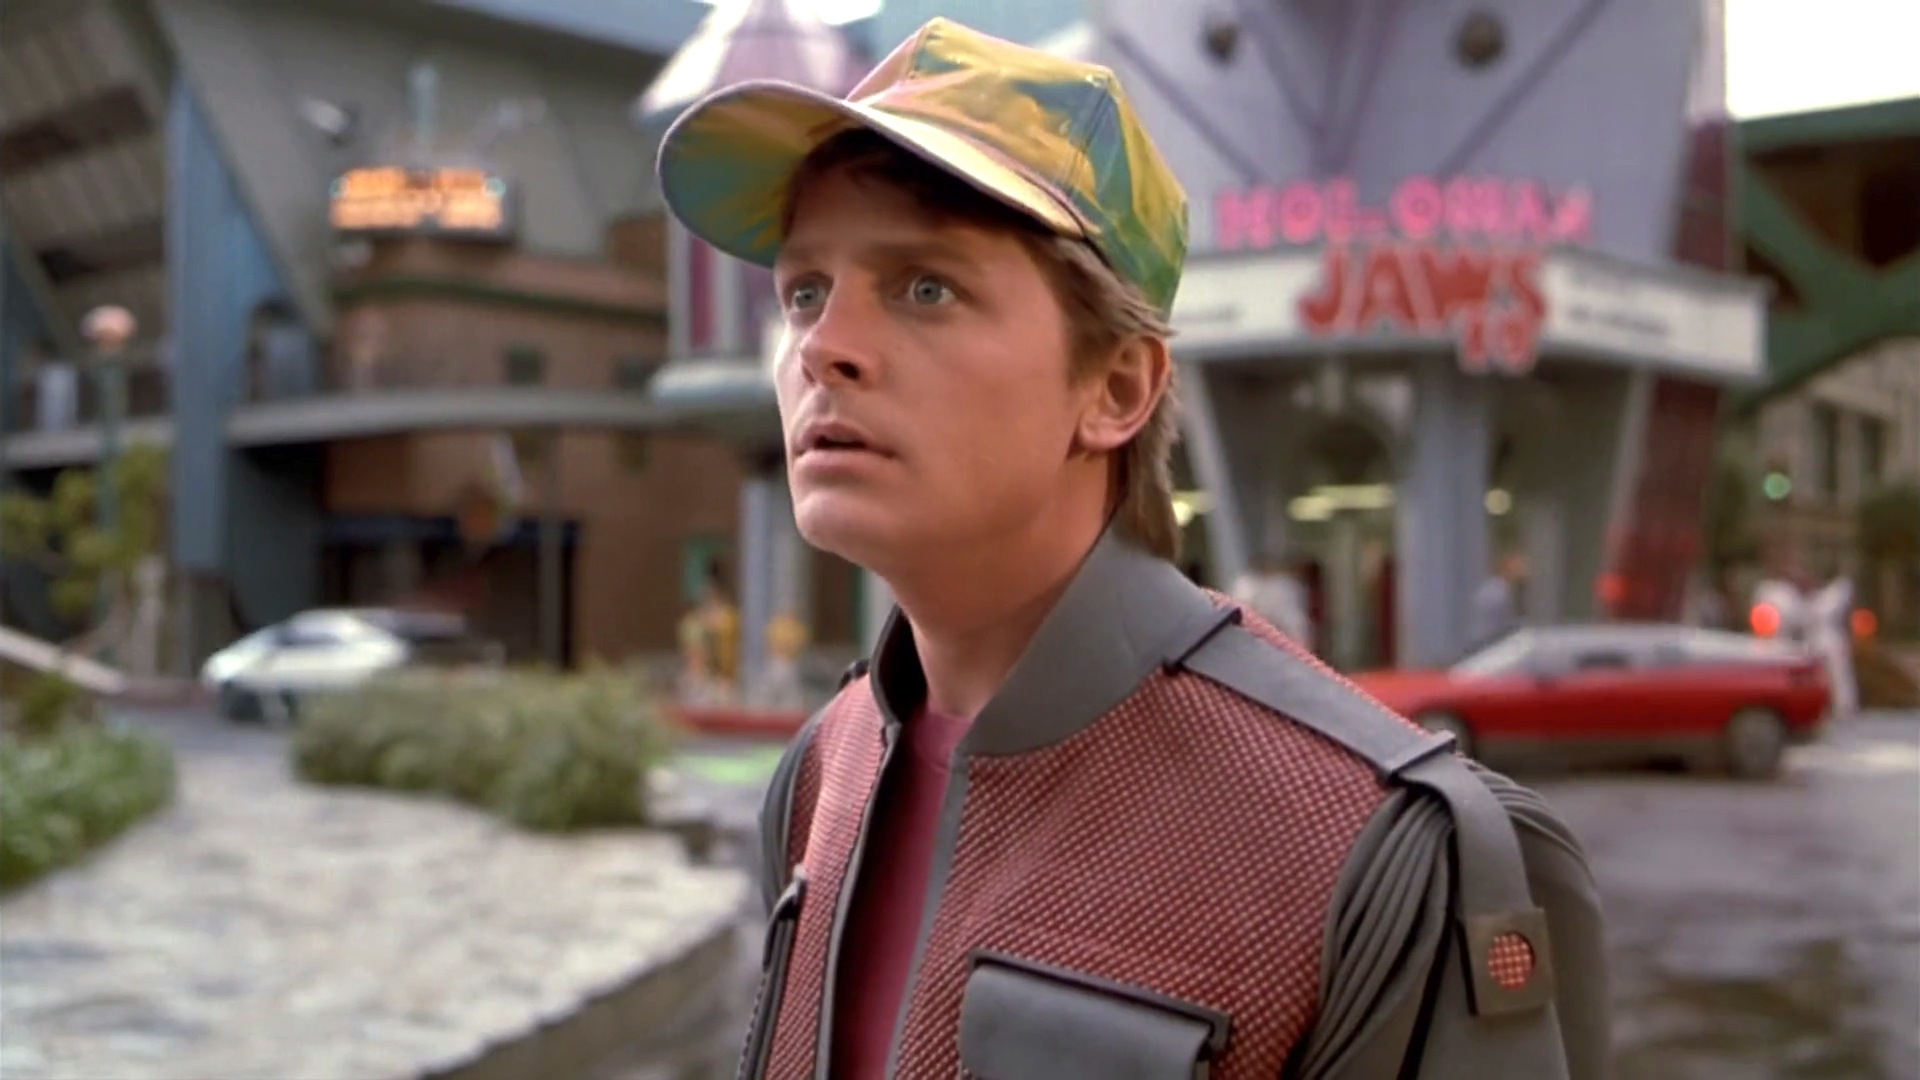 Nike 'Back to the Future II' shoes are up for grabs